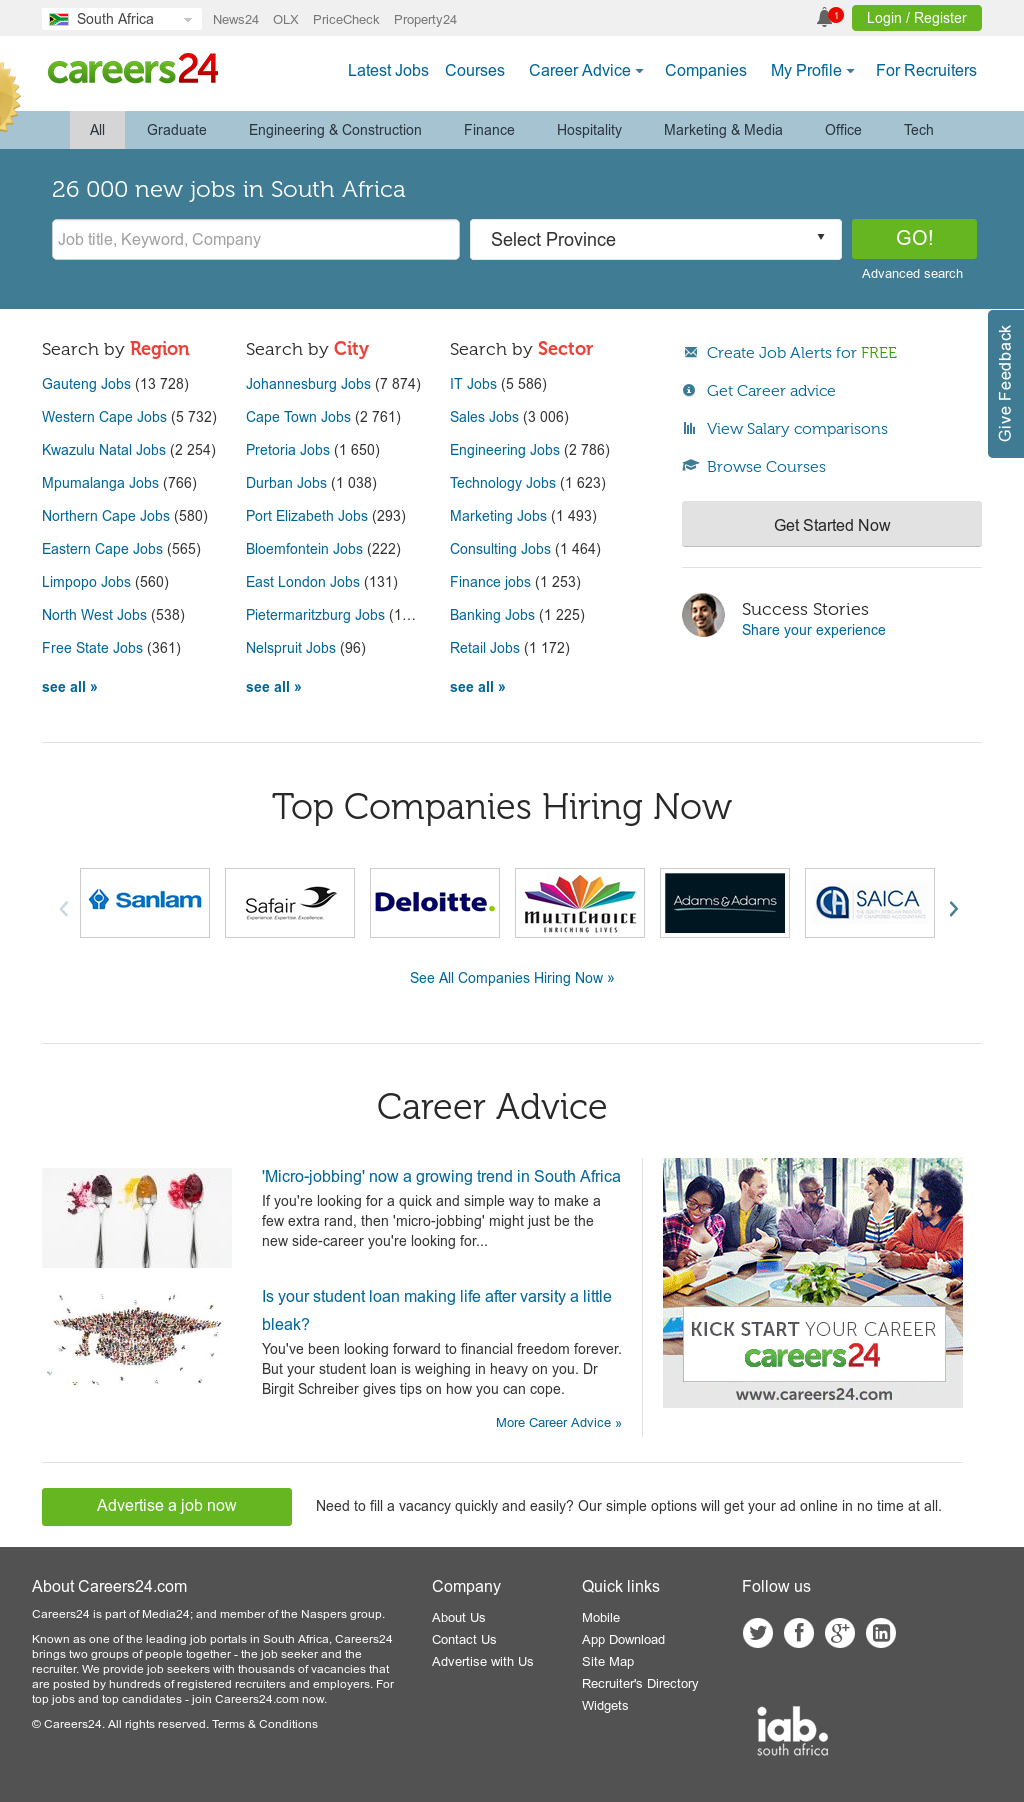 Careers24 Competitors, Revenue and Employees - Owler Company